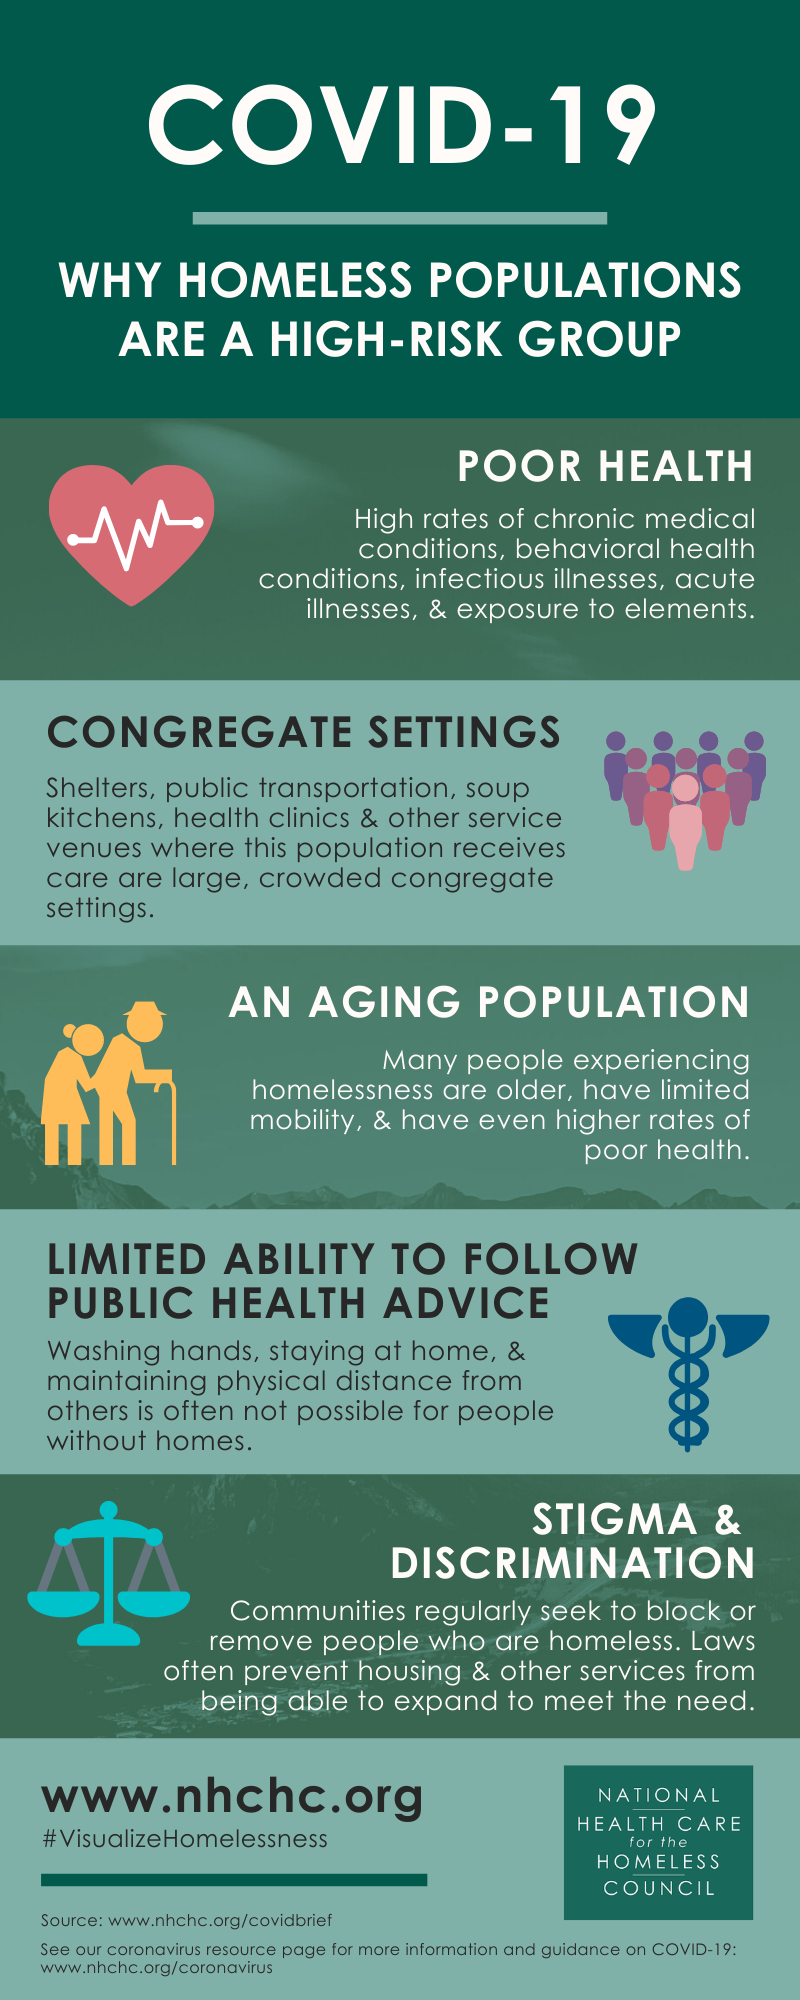 COVID-19 Graphics | National Health Care for the Homeless Council